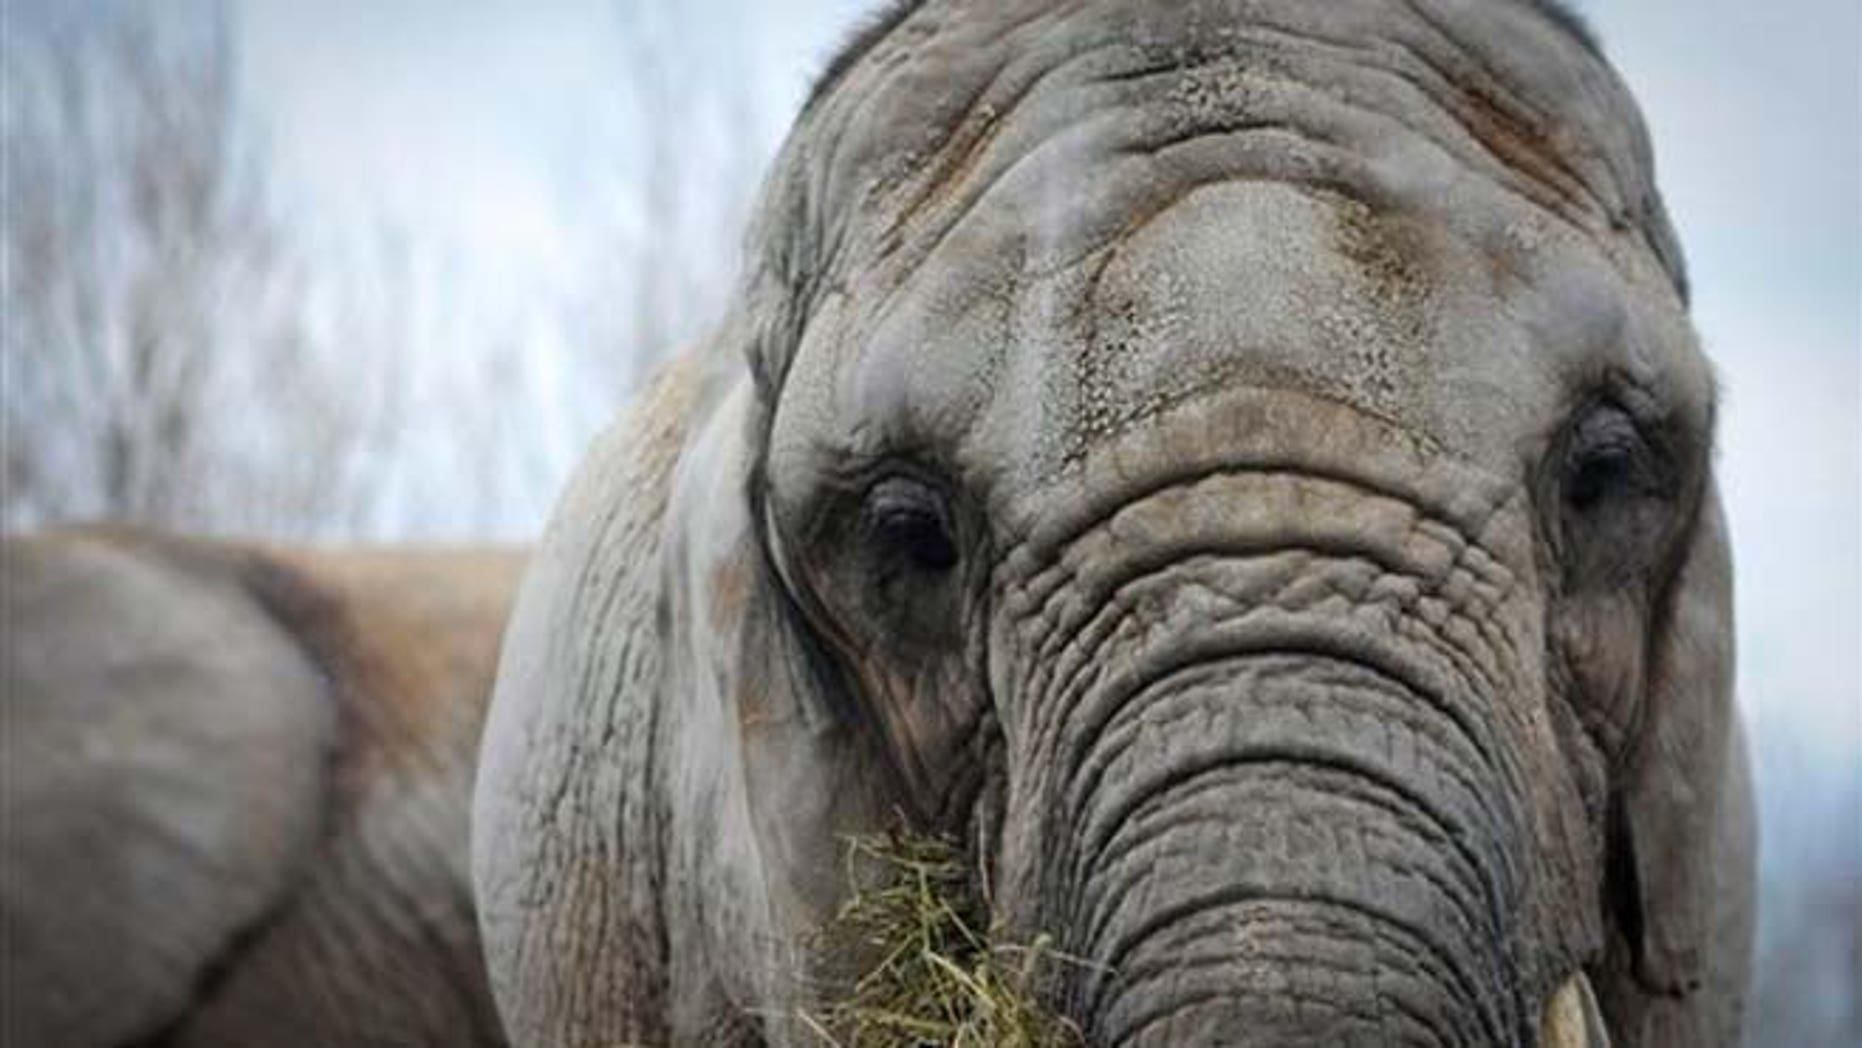 April 5, 2011:  Toka, age 41, is being retired from the zoo after 37 years, and will be flown on Aug. 2, 2012 to PAWS' 2,300-acre sanctuary in San Andreas, Calif.